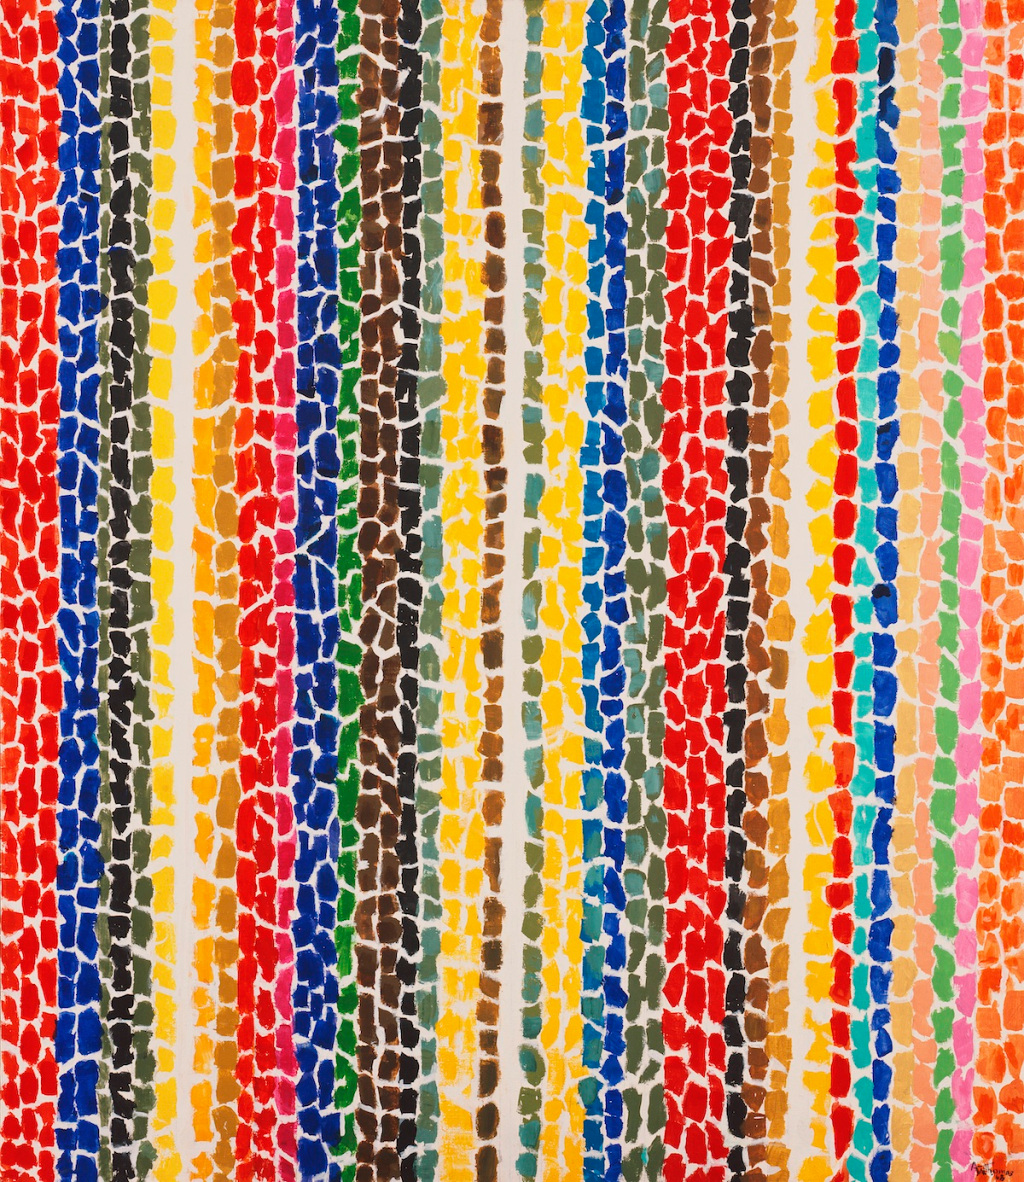 How Alma Thomas's Radiant Paintings Plotted a New Course for Abstraction